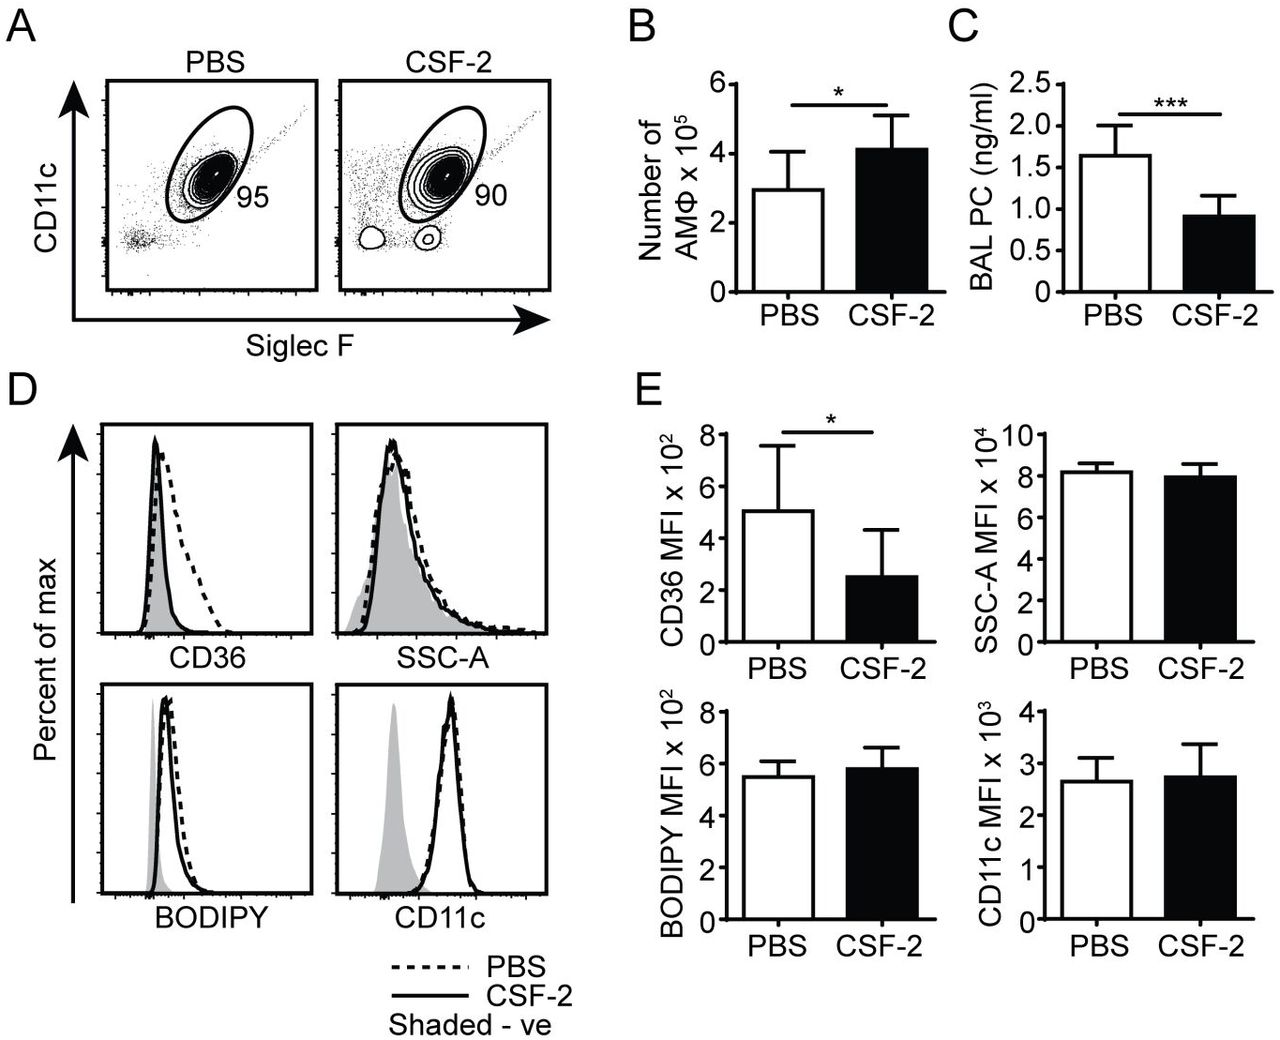 <t>CSF-2</t> induces AM proliferation and rescues aberrant pulmonary surfactant PC accumulation in CD44 -/- mice. (A) Representative flow cytometry plots showing the proportion of BAL AMs from CD44 -/- mice after 7 days of PBS or CSF-2 treatment. (B) Number of AMs in the BAL from CD44 -/- mice after PBS or CSF-2 treatment. (C) BAL PC concentration from CD44 -/- mice after PBS or CSF-2 treatment. (D) Representative flow cytometry histograms comparing the phenotype of AMs from CD44 -/- mice after 7 days of PBS or CSF-2 treatment. (E) Graphs comparing the MFI of SSC-A, BODIPY, CD36, and CD11c between AMs from CD44 -/- mice after 7 days of PBS or CSF-2 treatment. Data show an average of two experiments ± SD, each with three to five mice. Background MFI of autofluorescence from unlabeled CD44 +/+ and CD44 -/- cells were respectively subtracted in the flow cytometry analysis. Significance indicated as * p